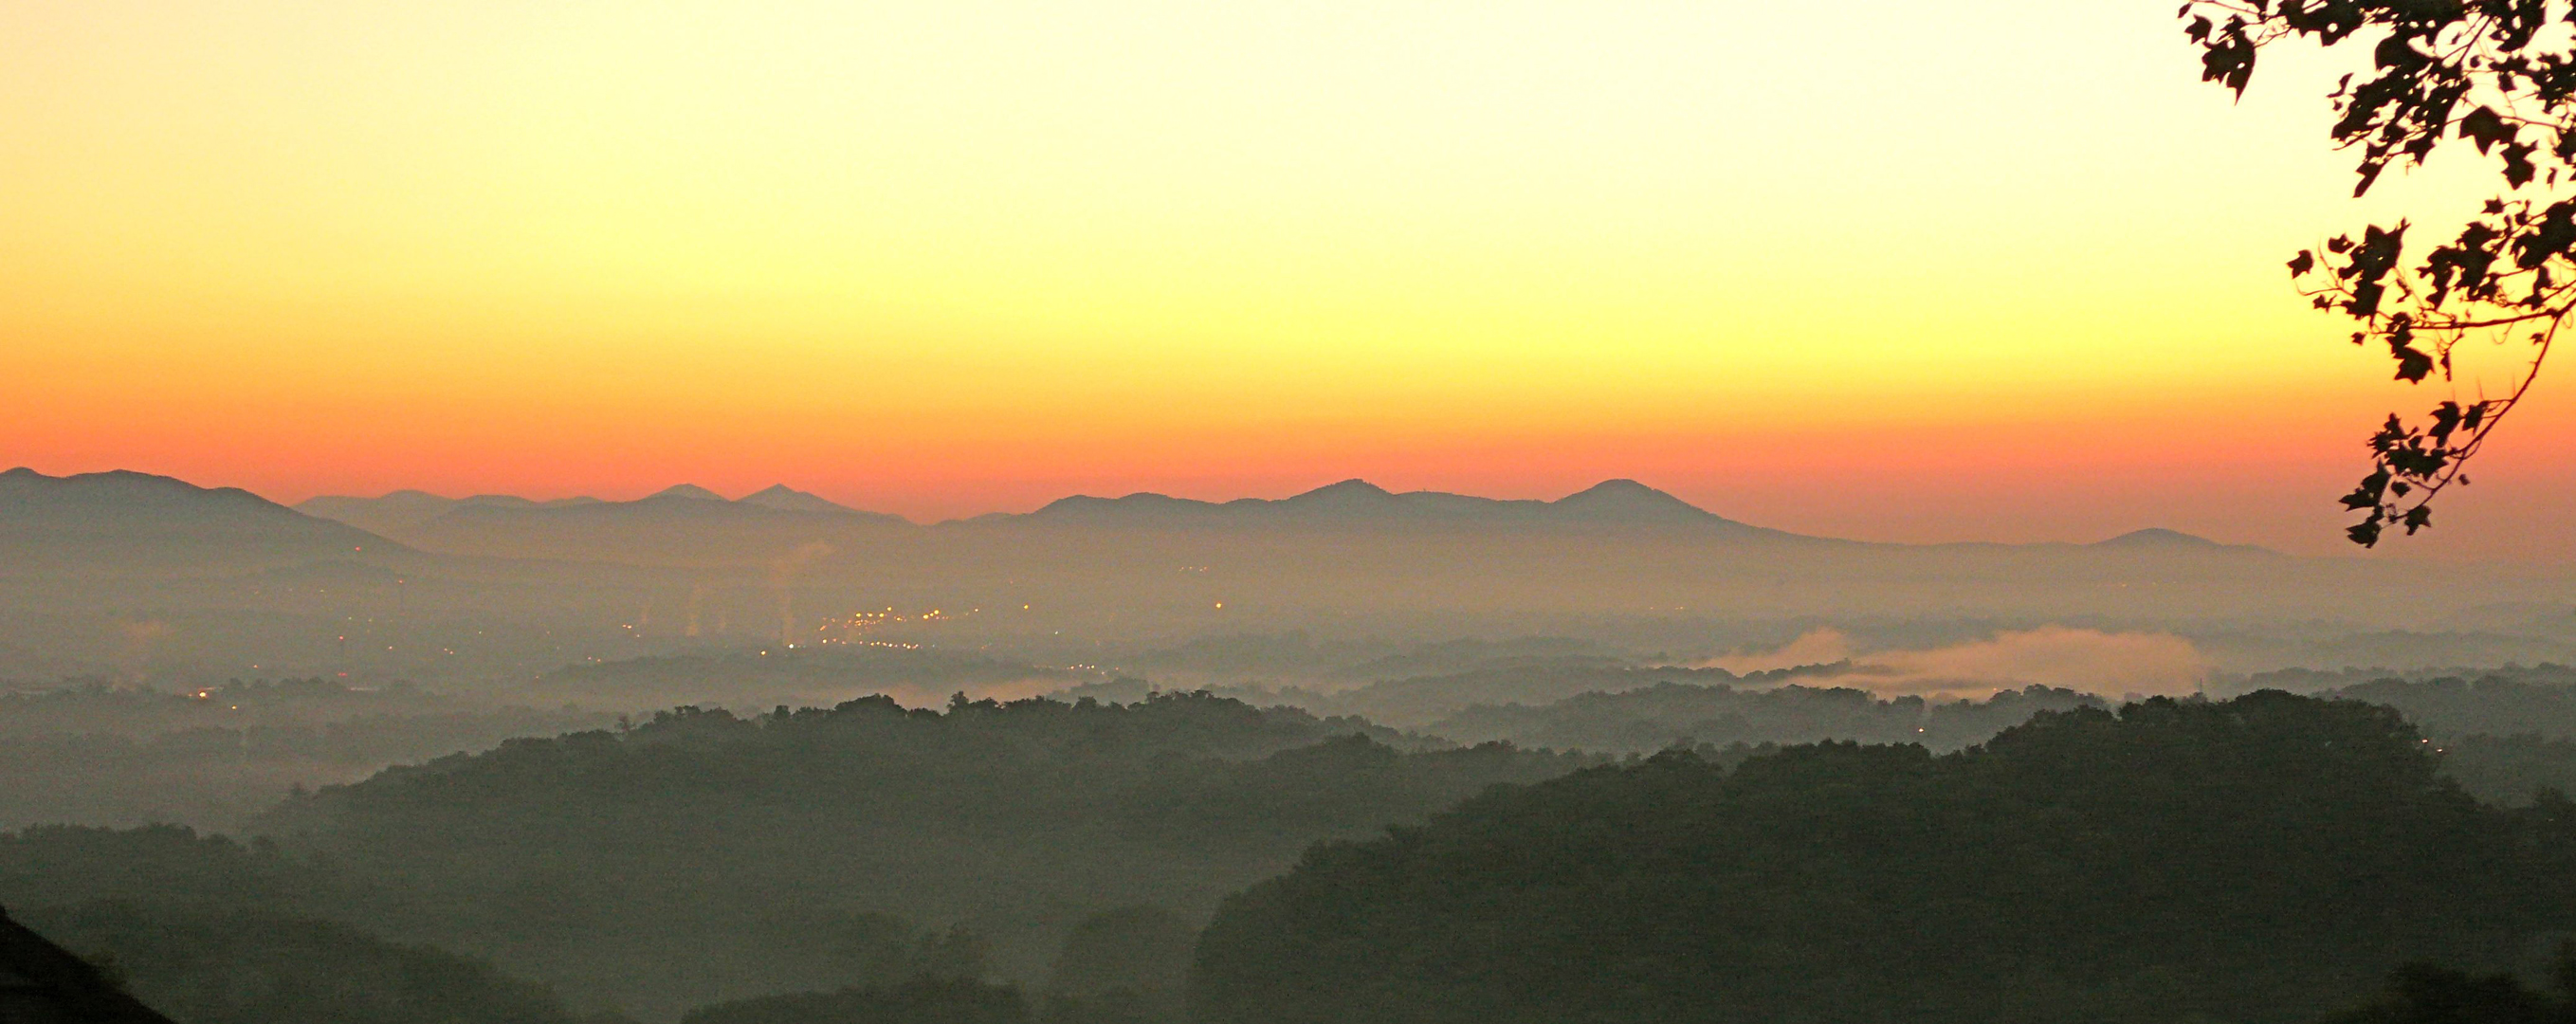 Roanoke Valley Before Sunrise